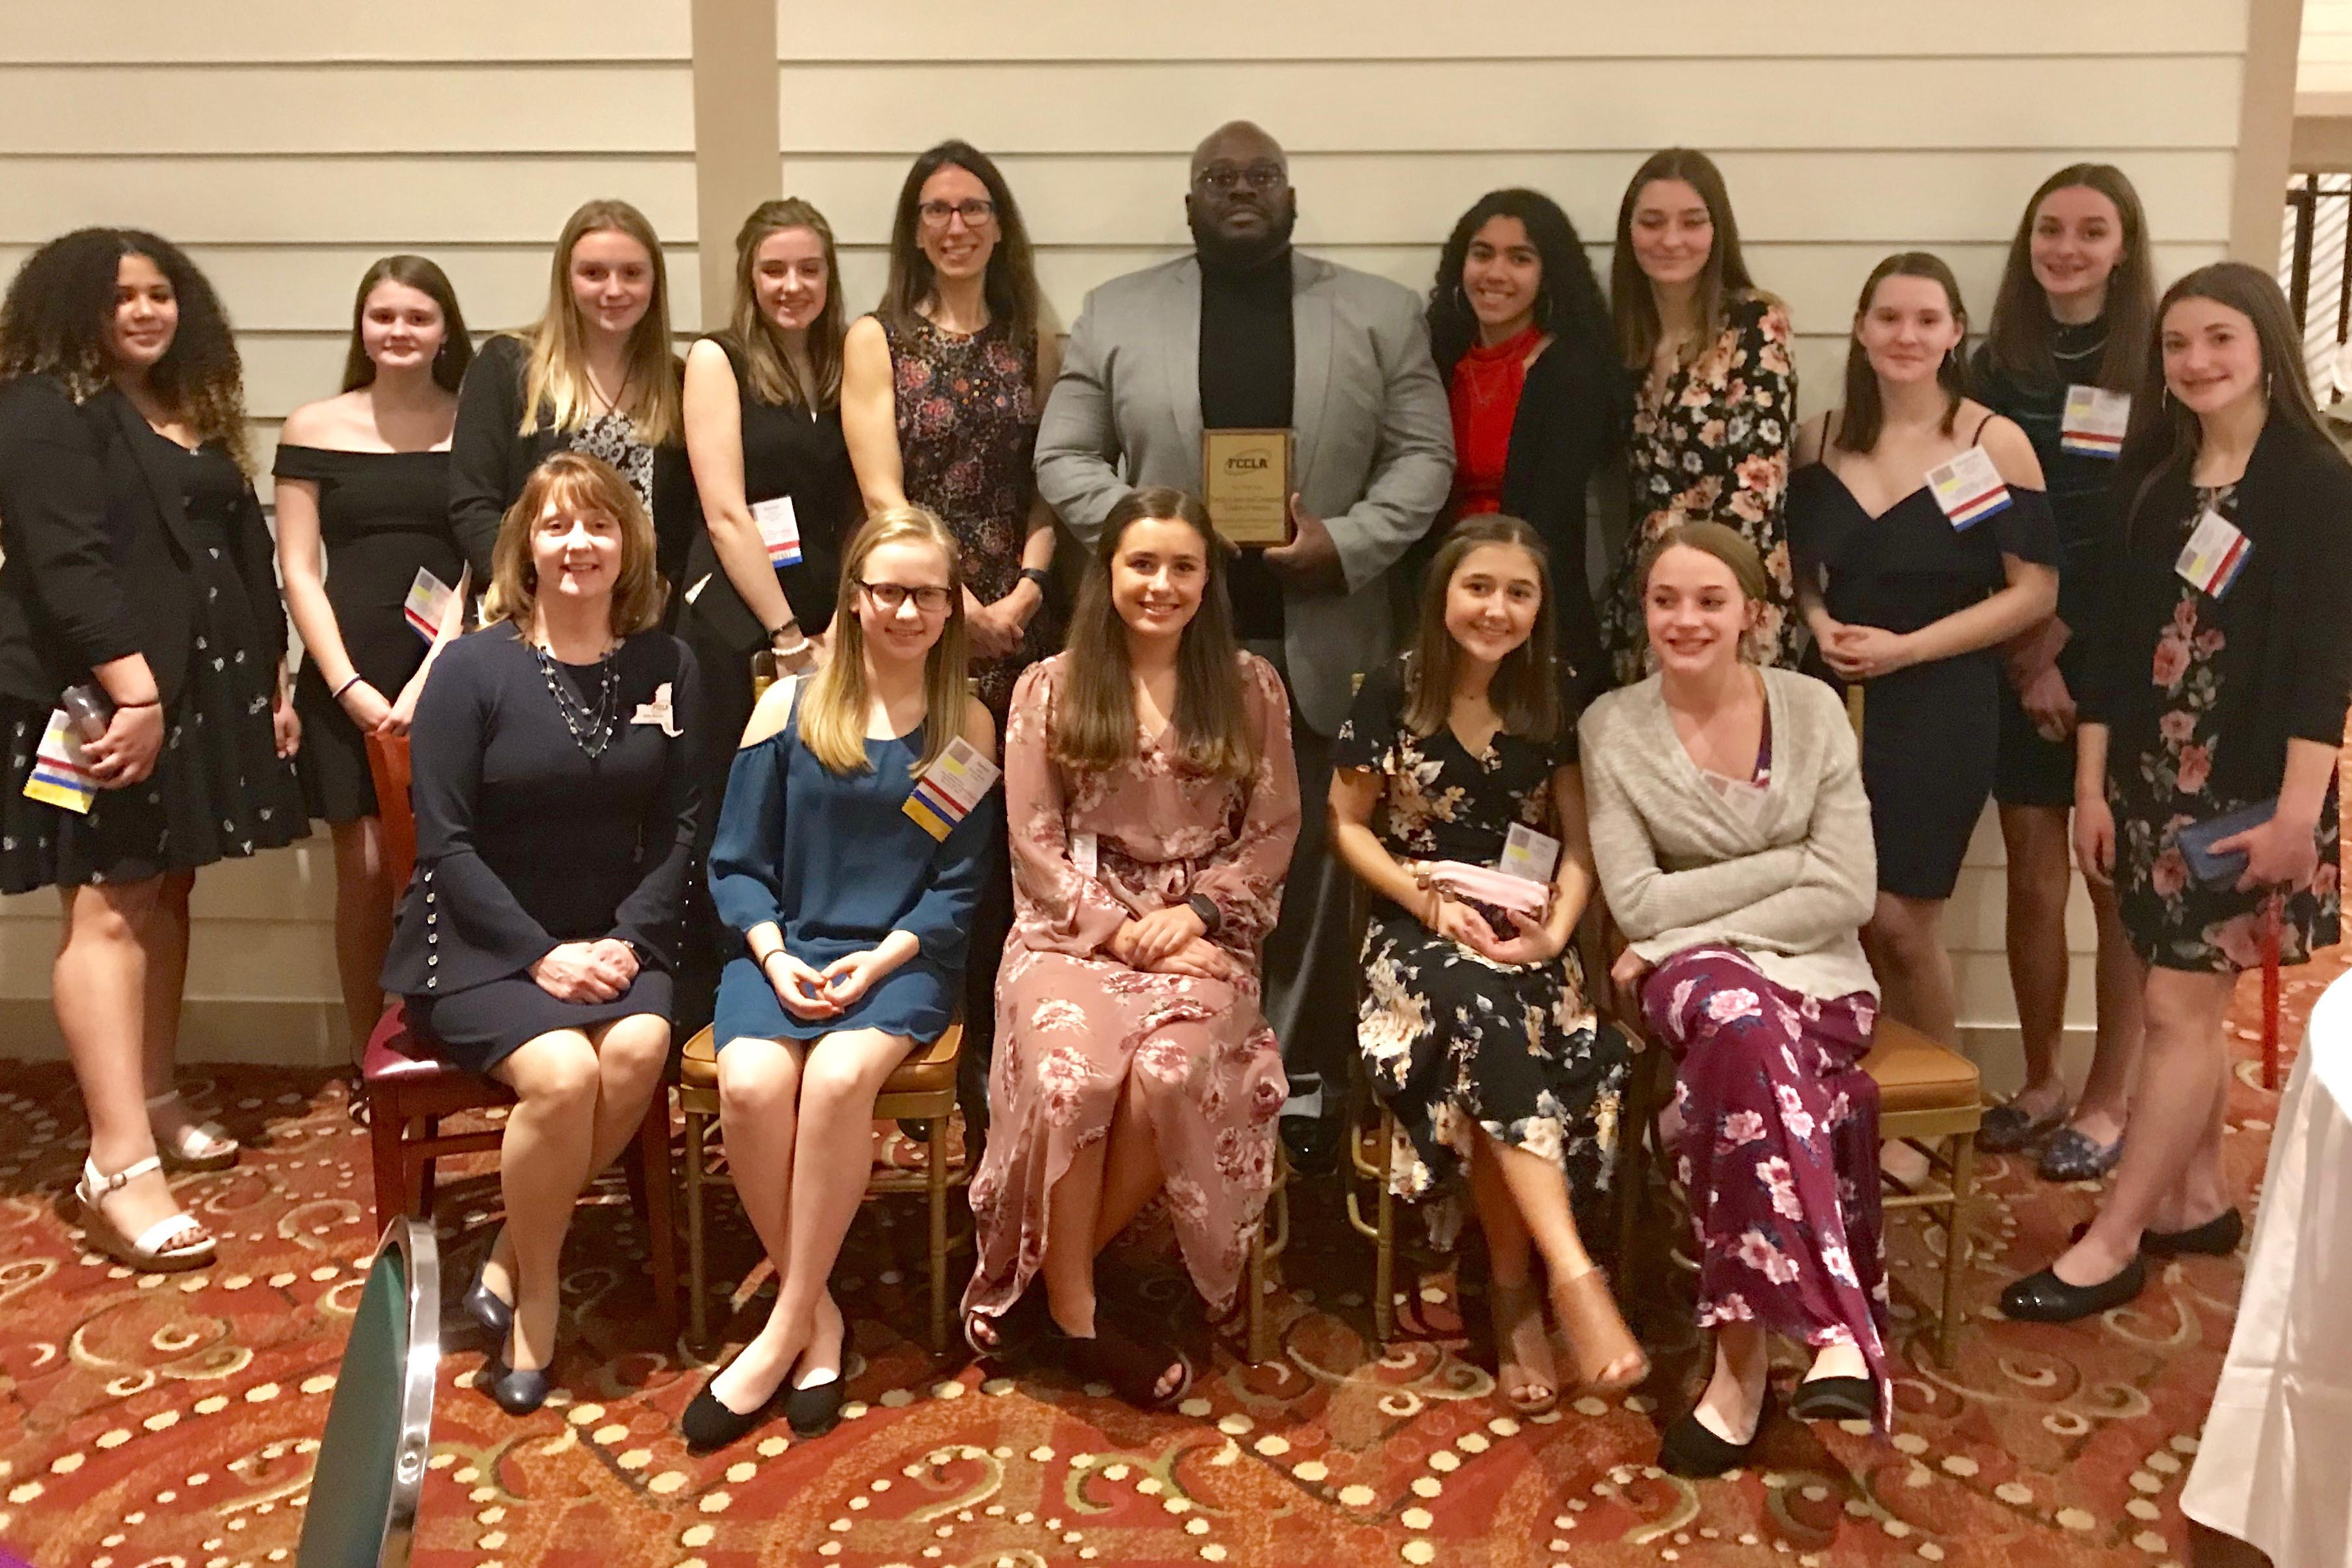 Group photo of Catskill students who attended NYS FCCLA conference